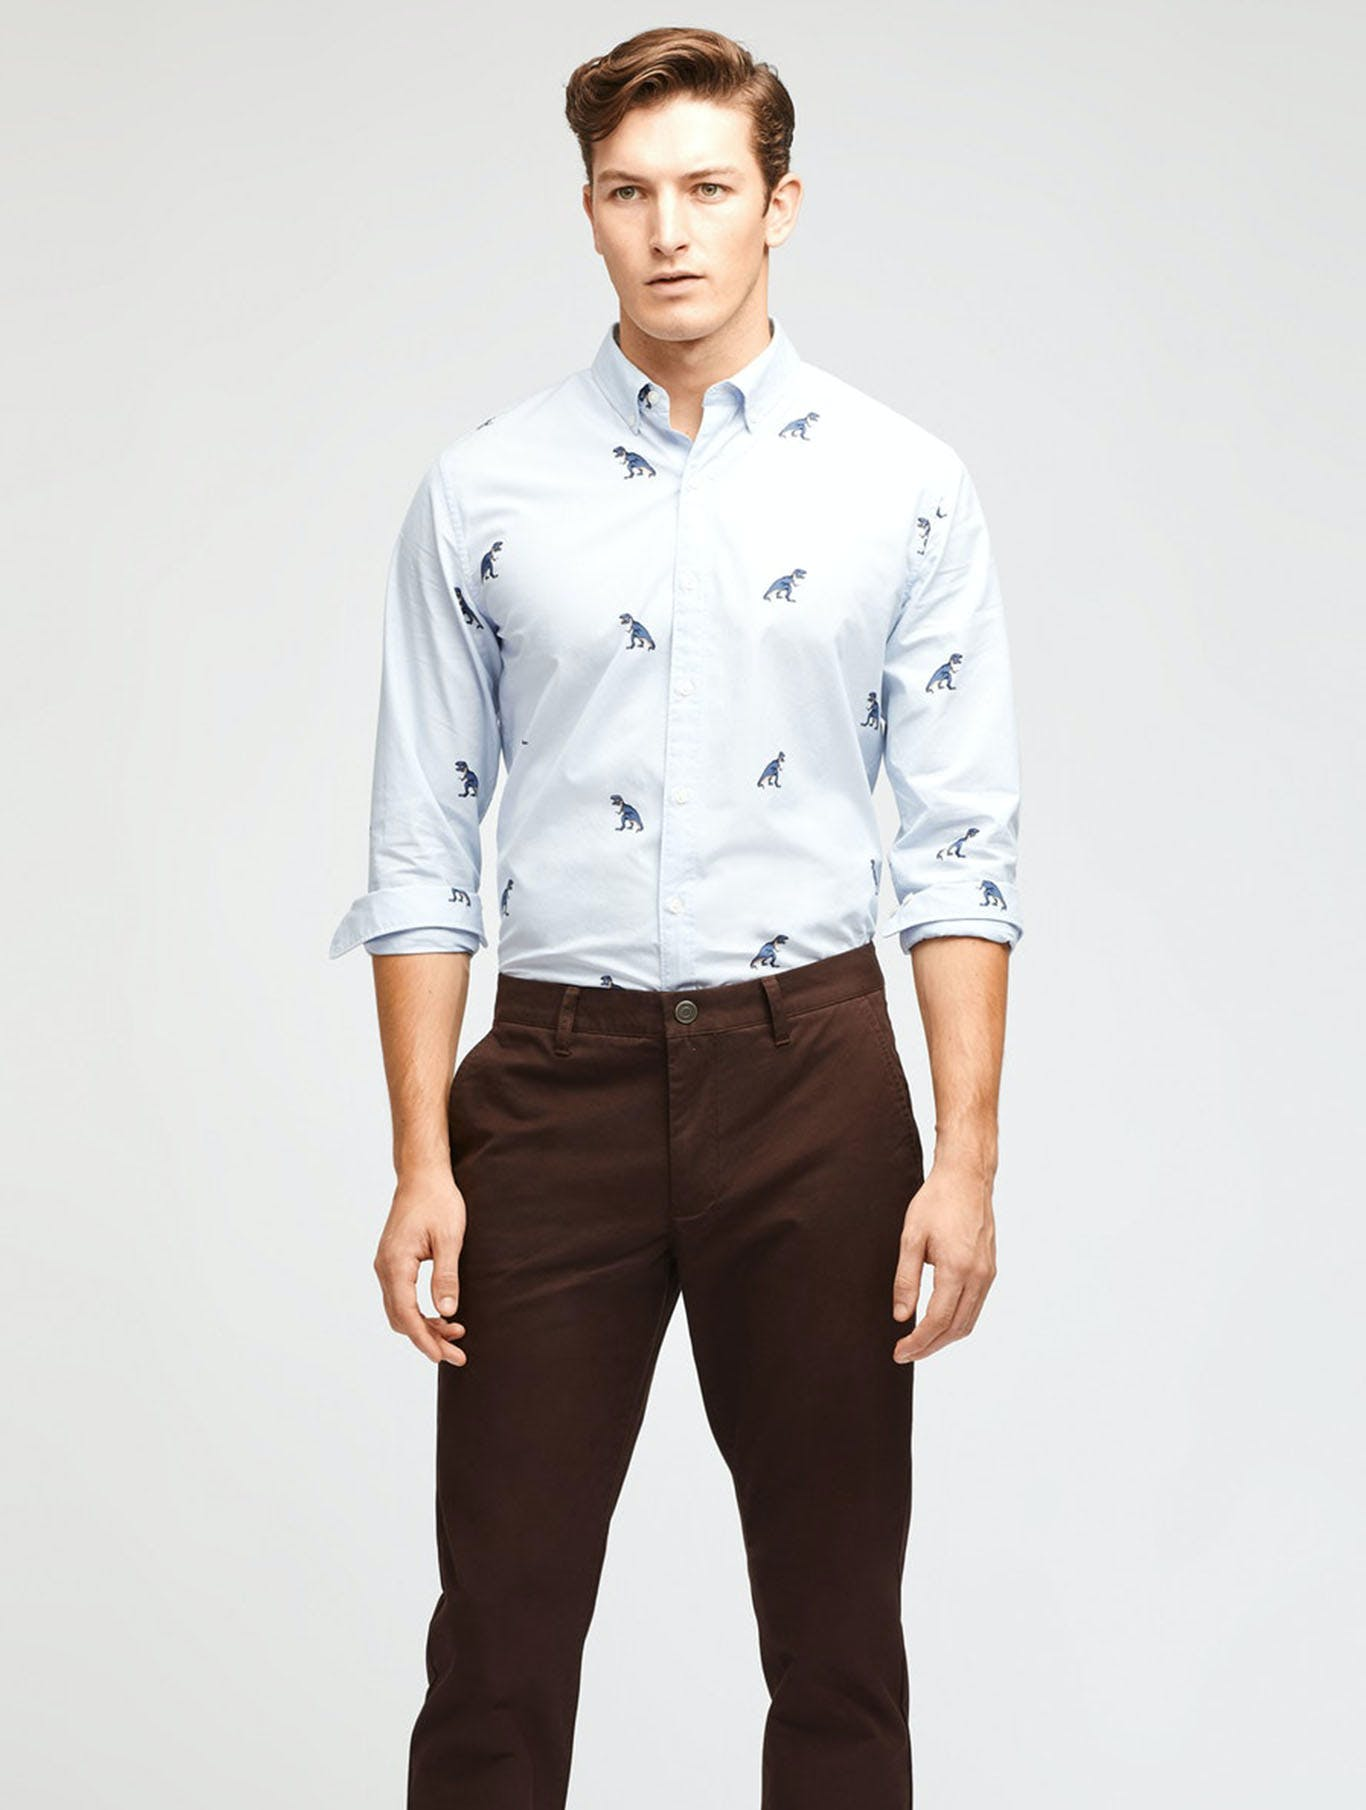 Image of man in a casual shirt